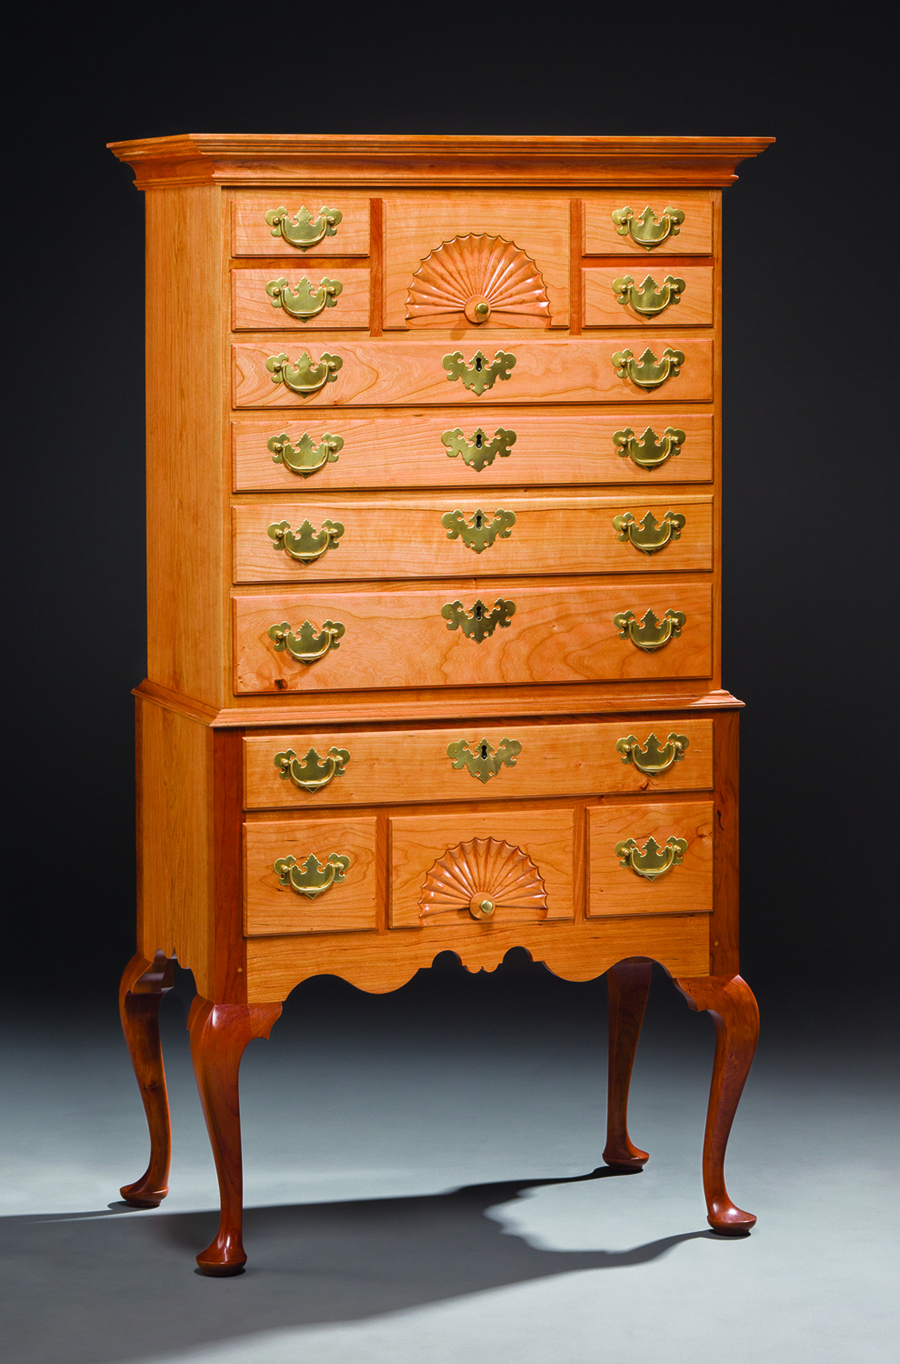 Dresser by Eric Grant New Hampshire Prison Outreach Program